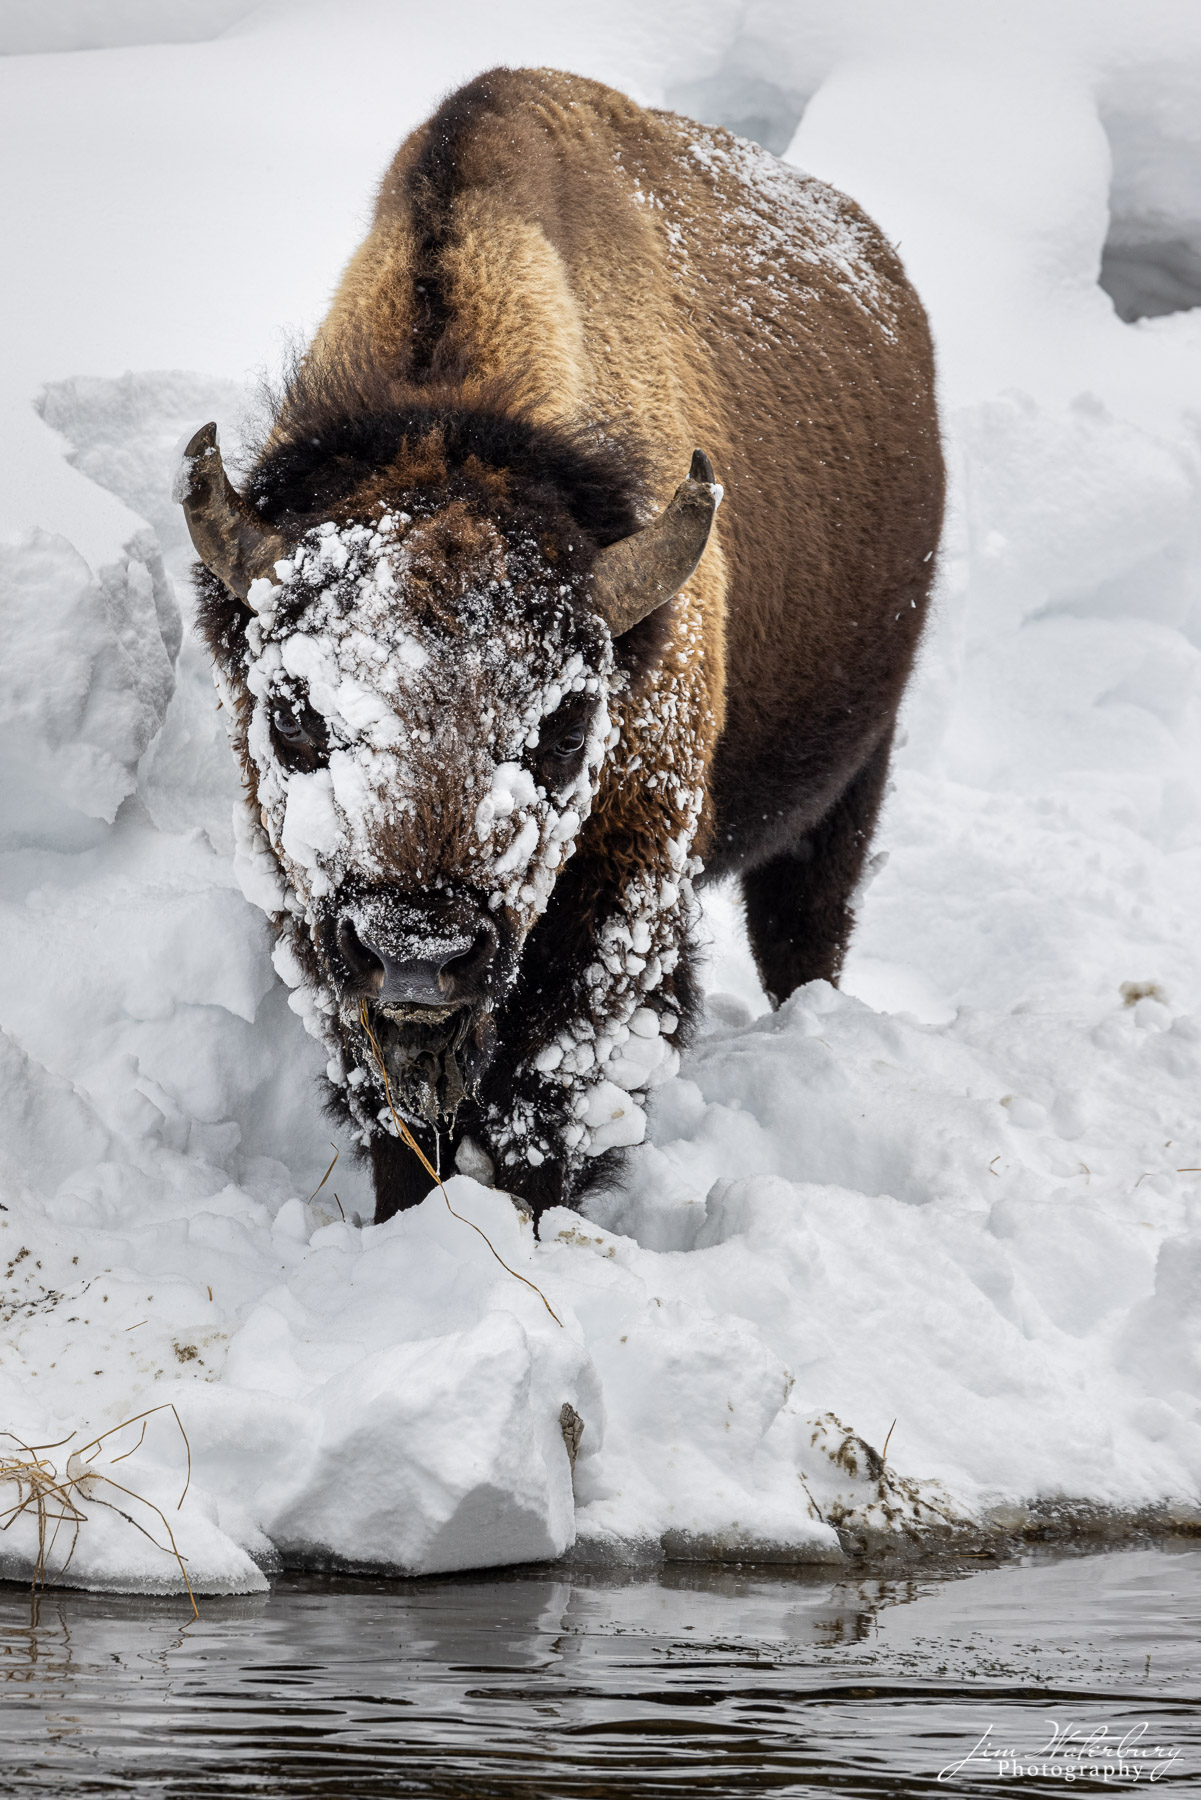 A lone bison with its face covered in snow.